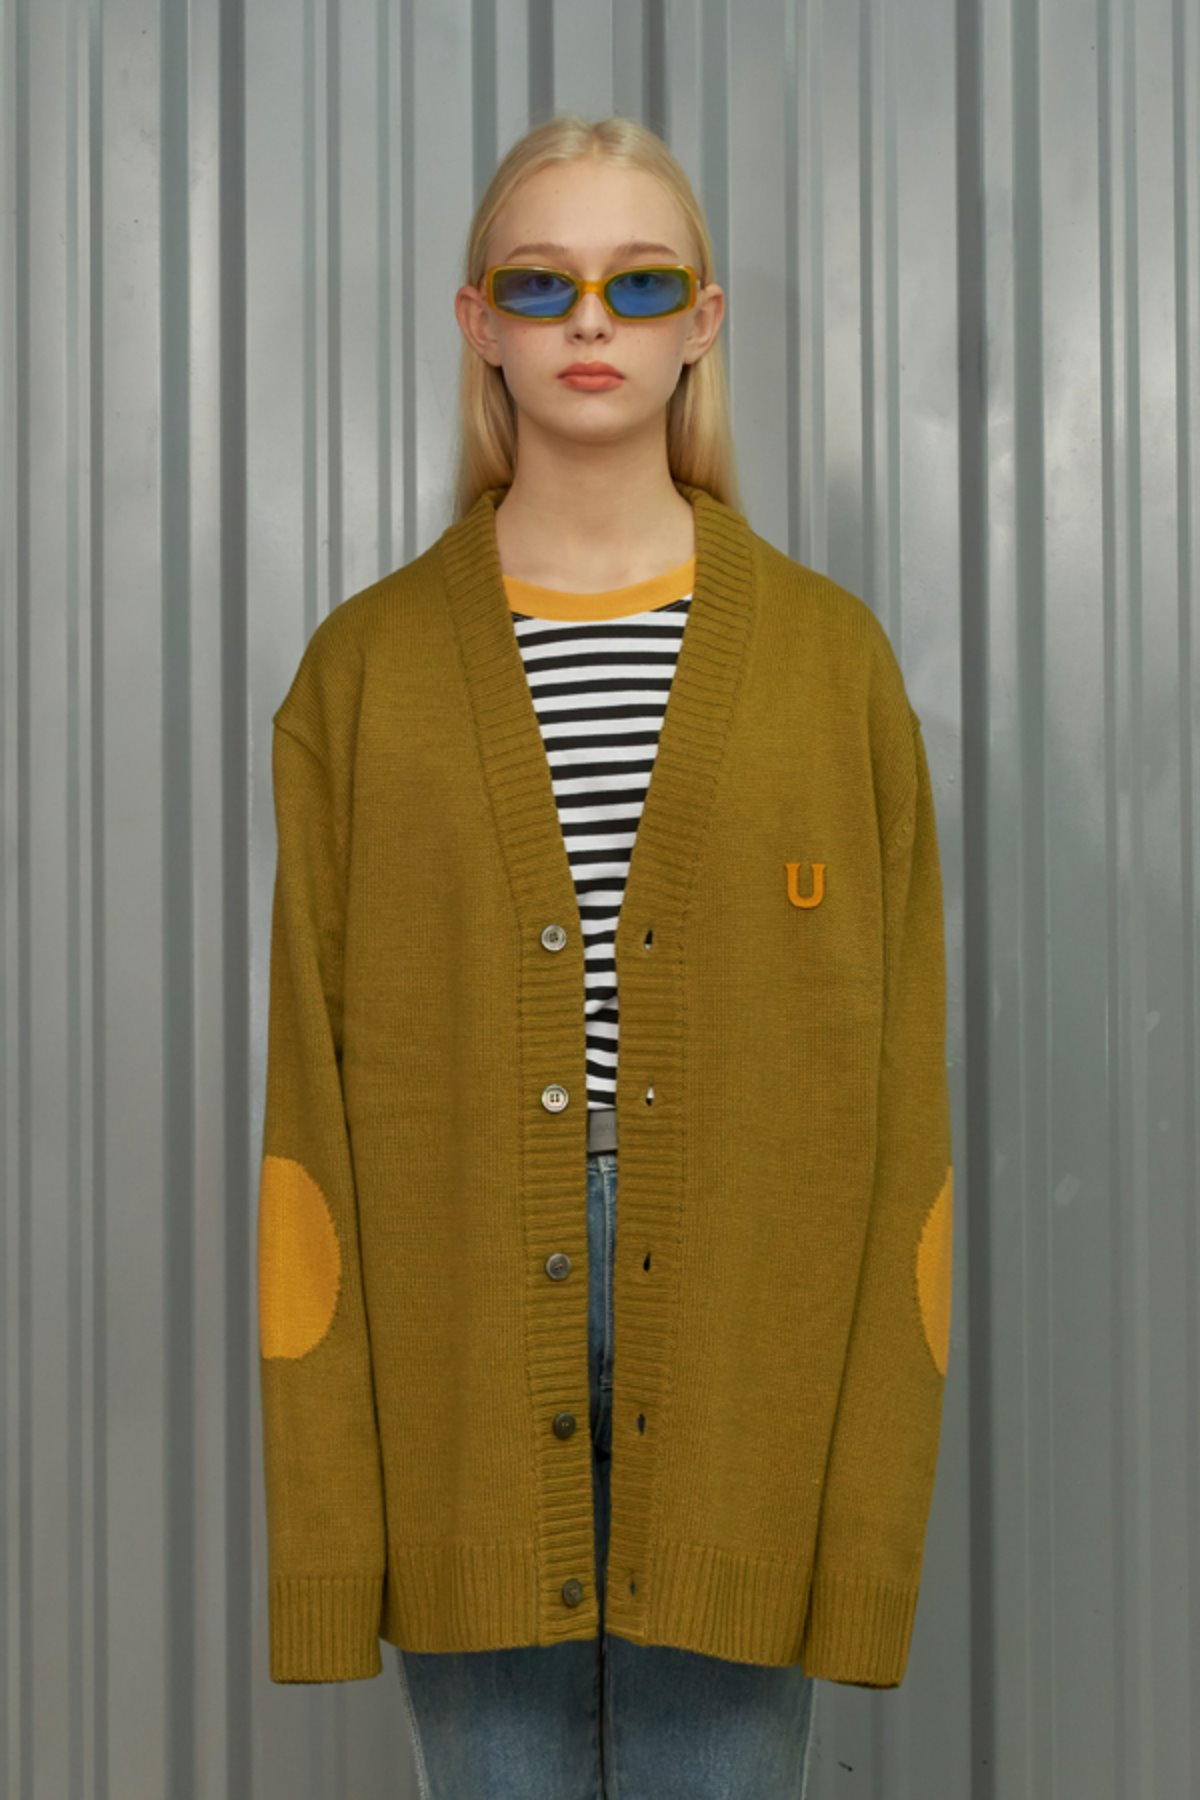 U PATCH CARDIGAN / OLIVE GREEN